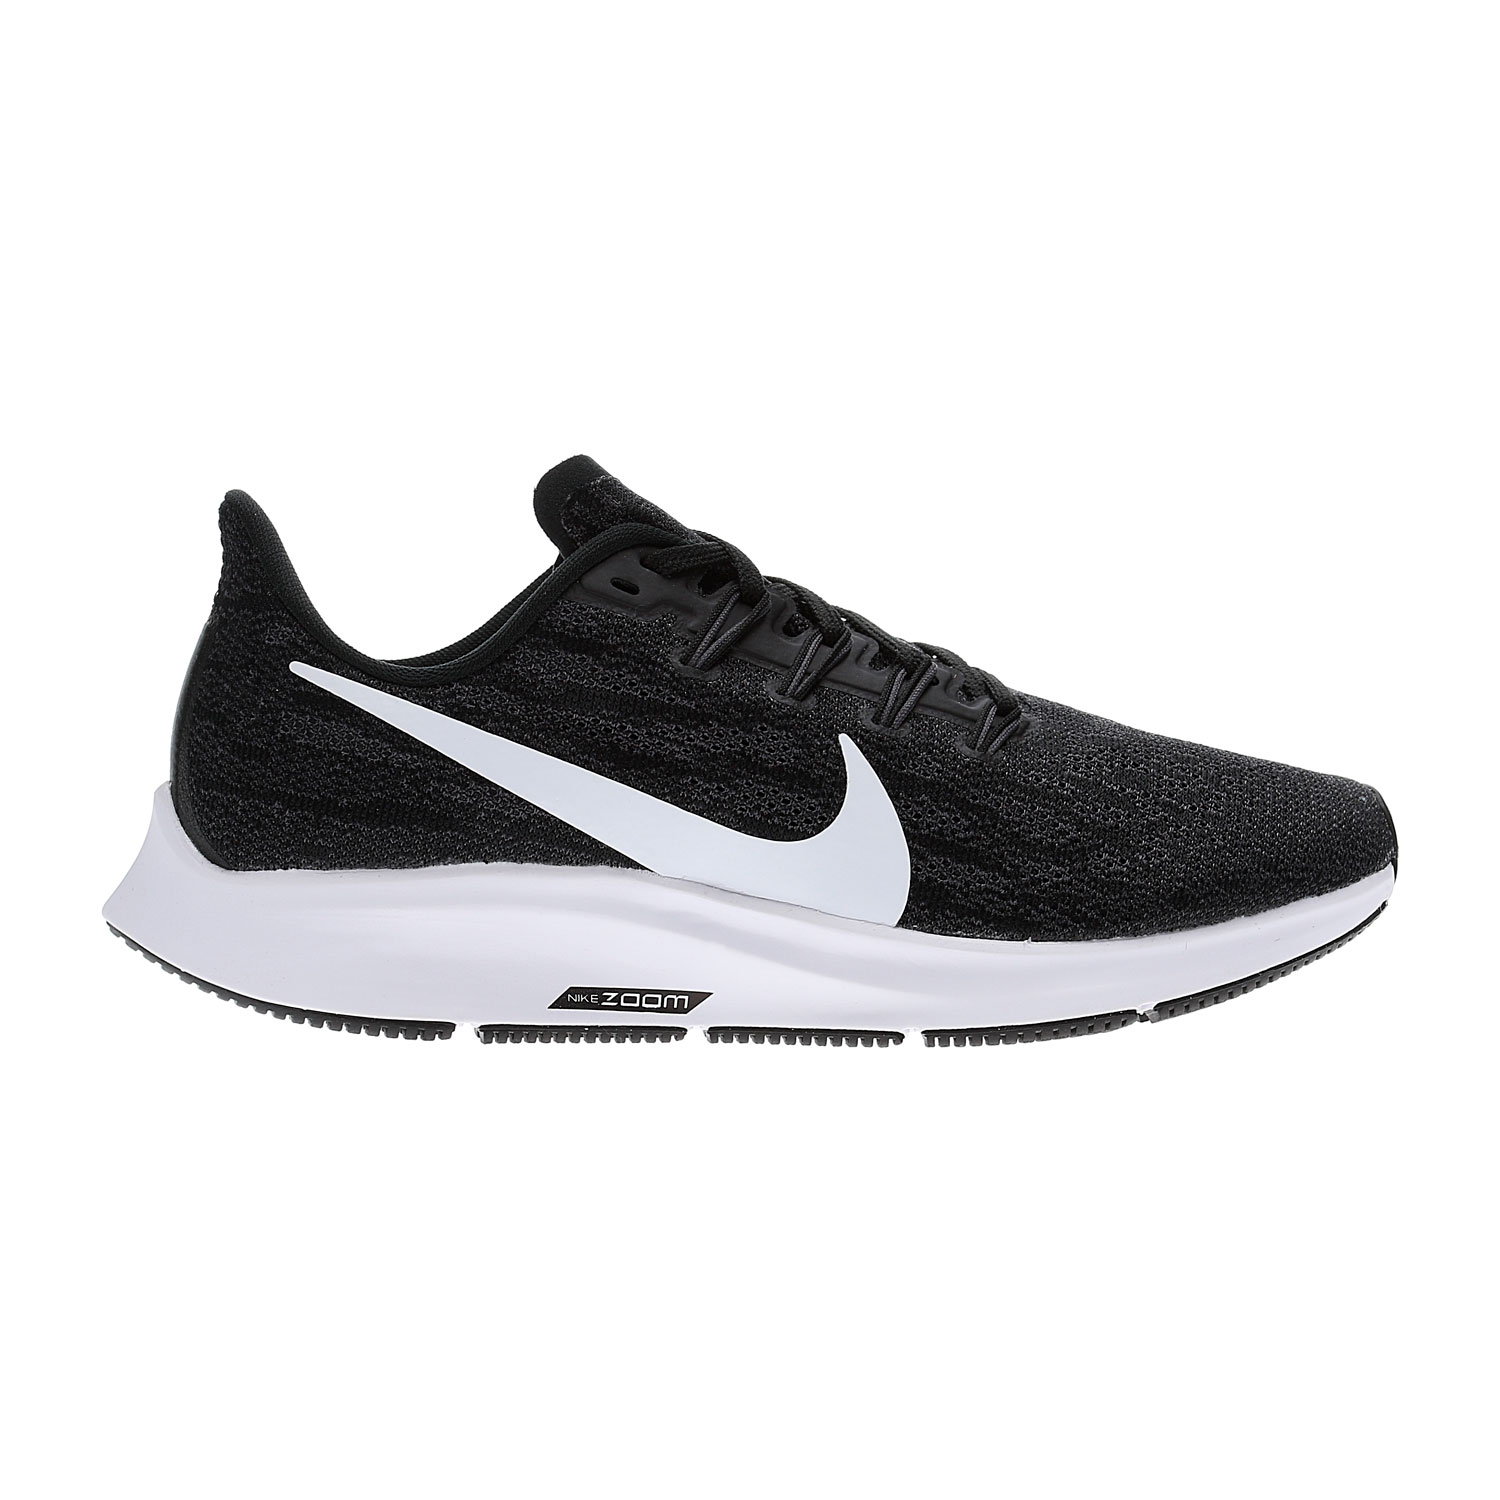 sports shoes 36069 75bfe Nike Pegasus 36 Women's Running Shoes - Black/White